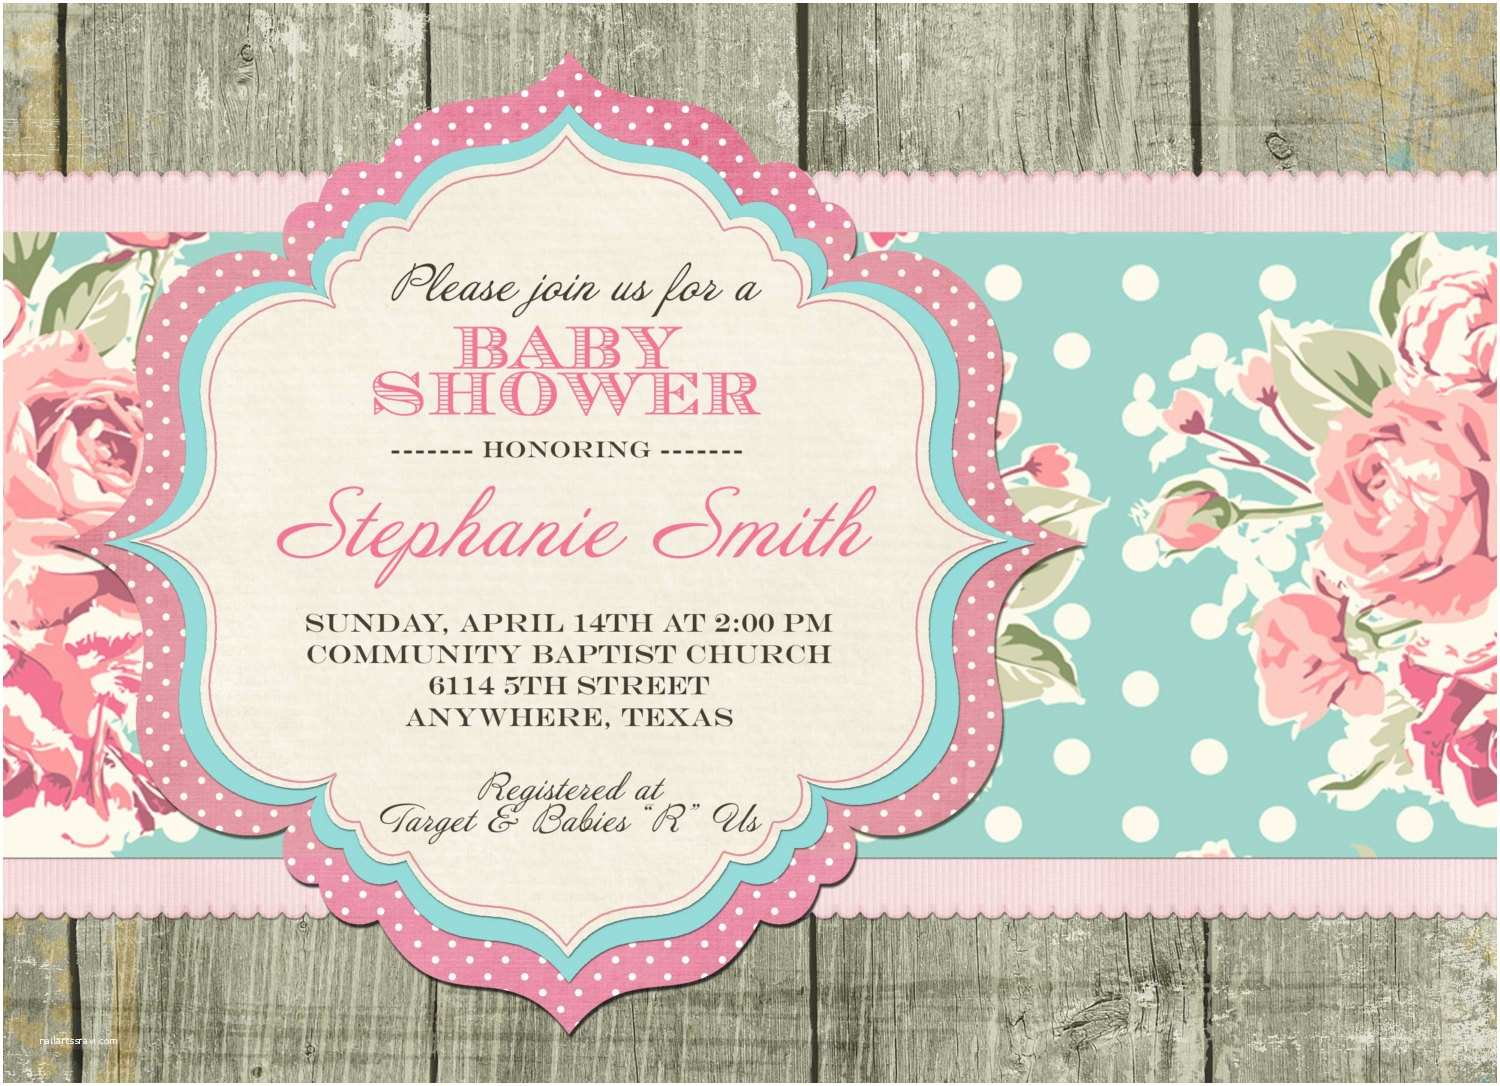 Shabby Chic Baby Shower Invitations Template Shabby Chic Baby Shower Invitations